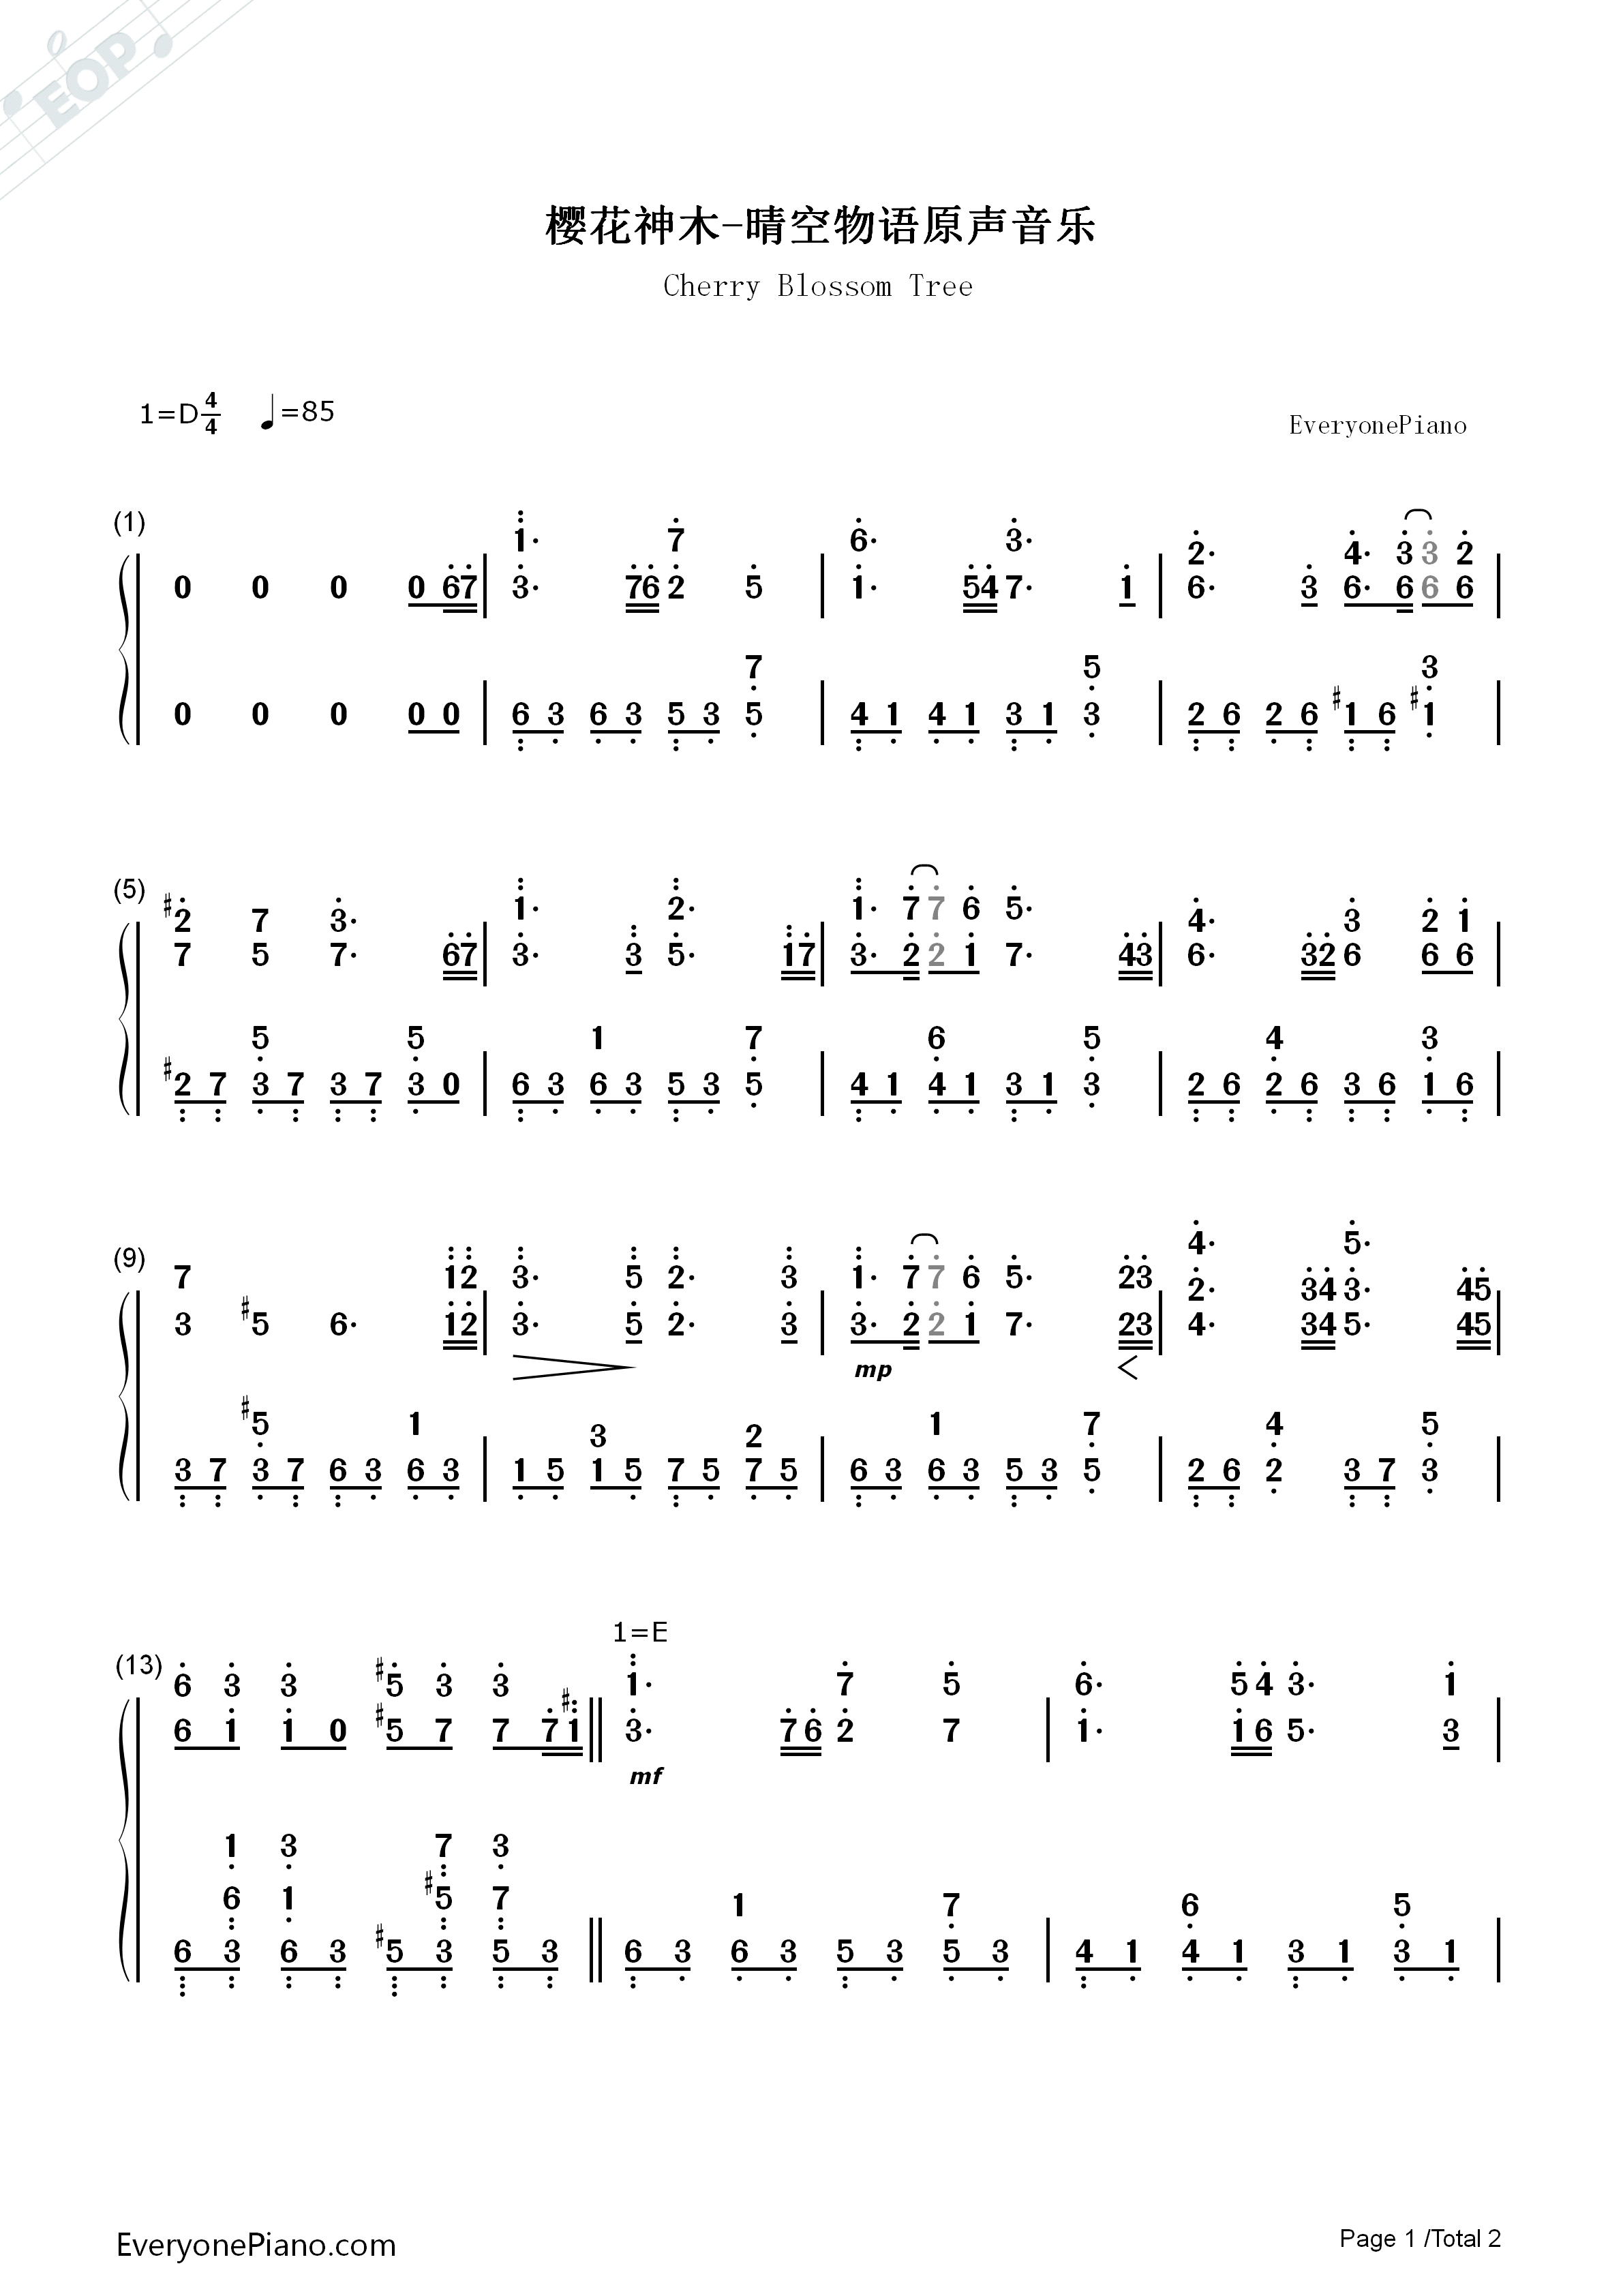 Cherry Blossom Tree-Glory Destiny Online OST Numbered Musical Notation Preview 1